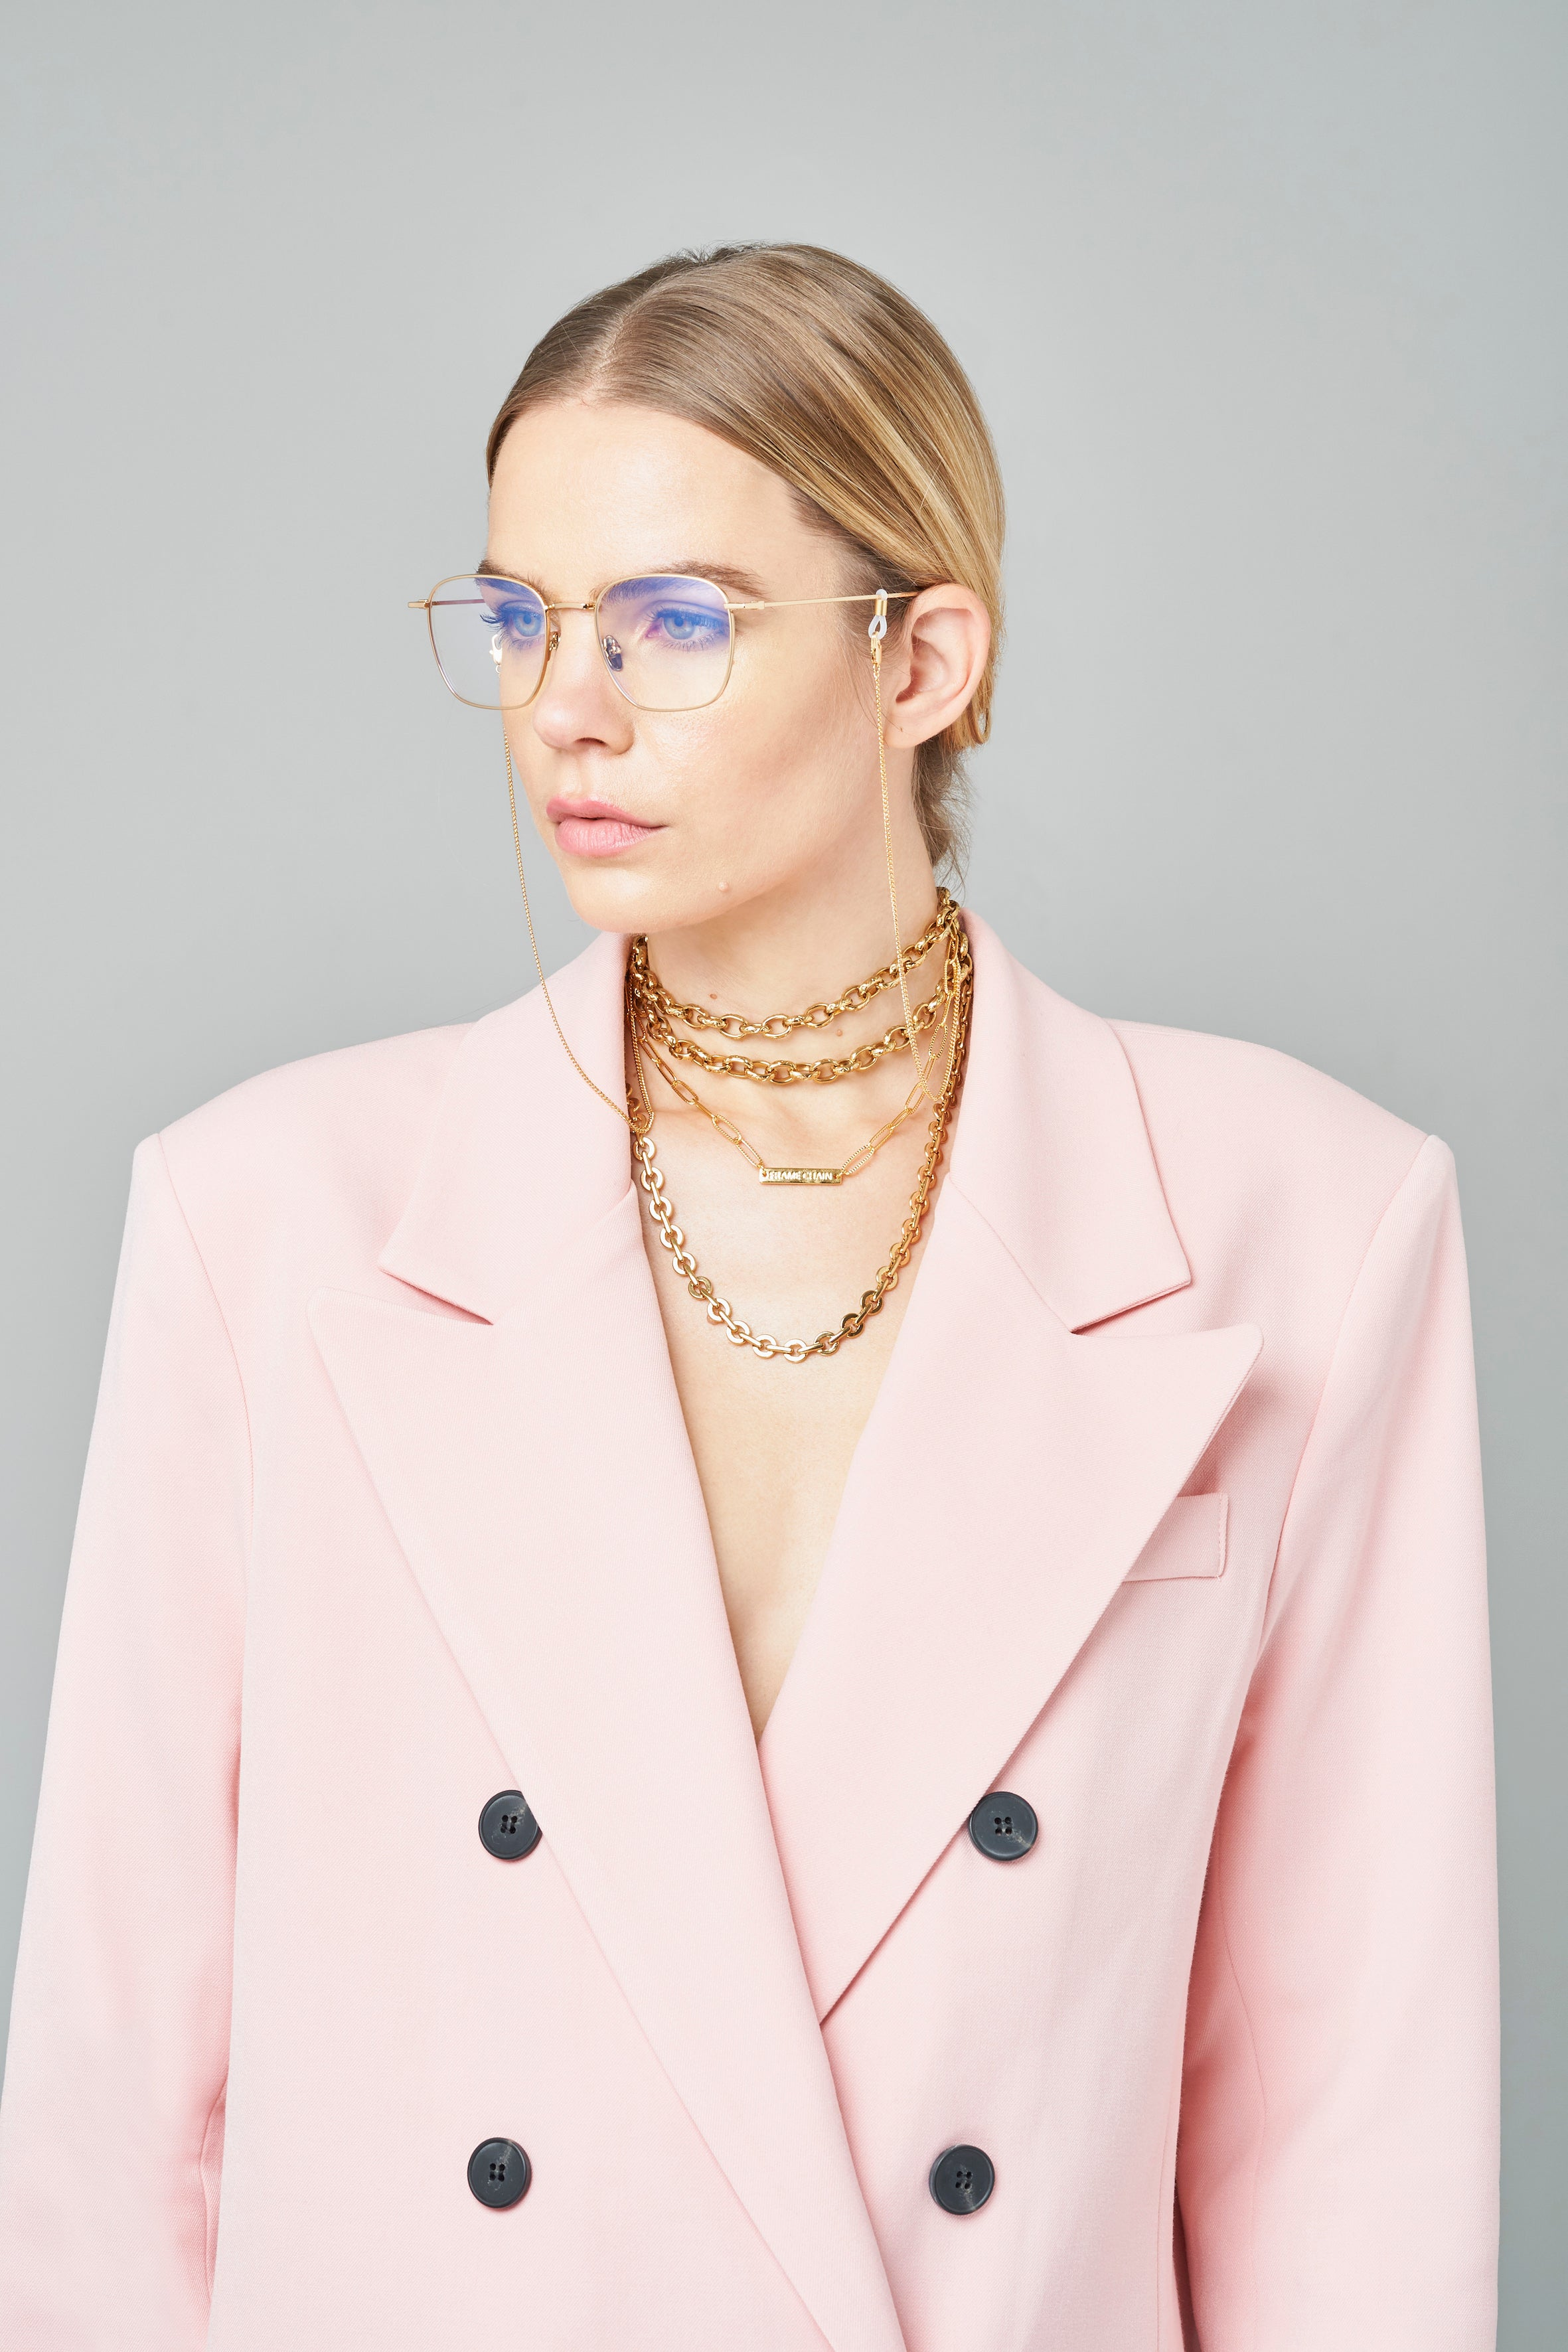 FRAME CHAIN | TONY in YELLOW GOLD | Glasses Chains | Eyewear Chains